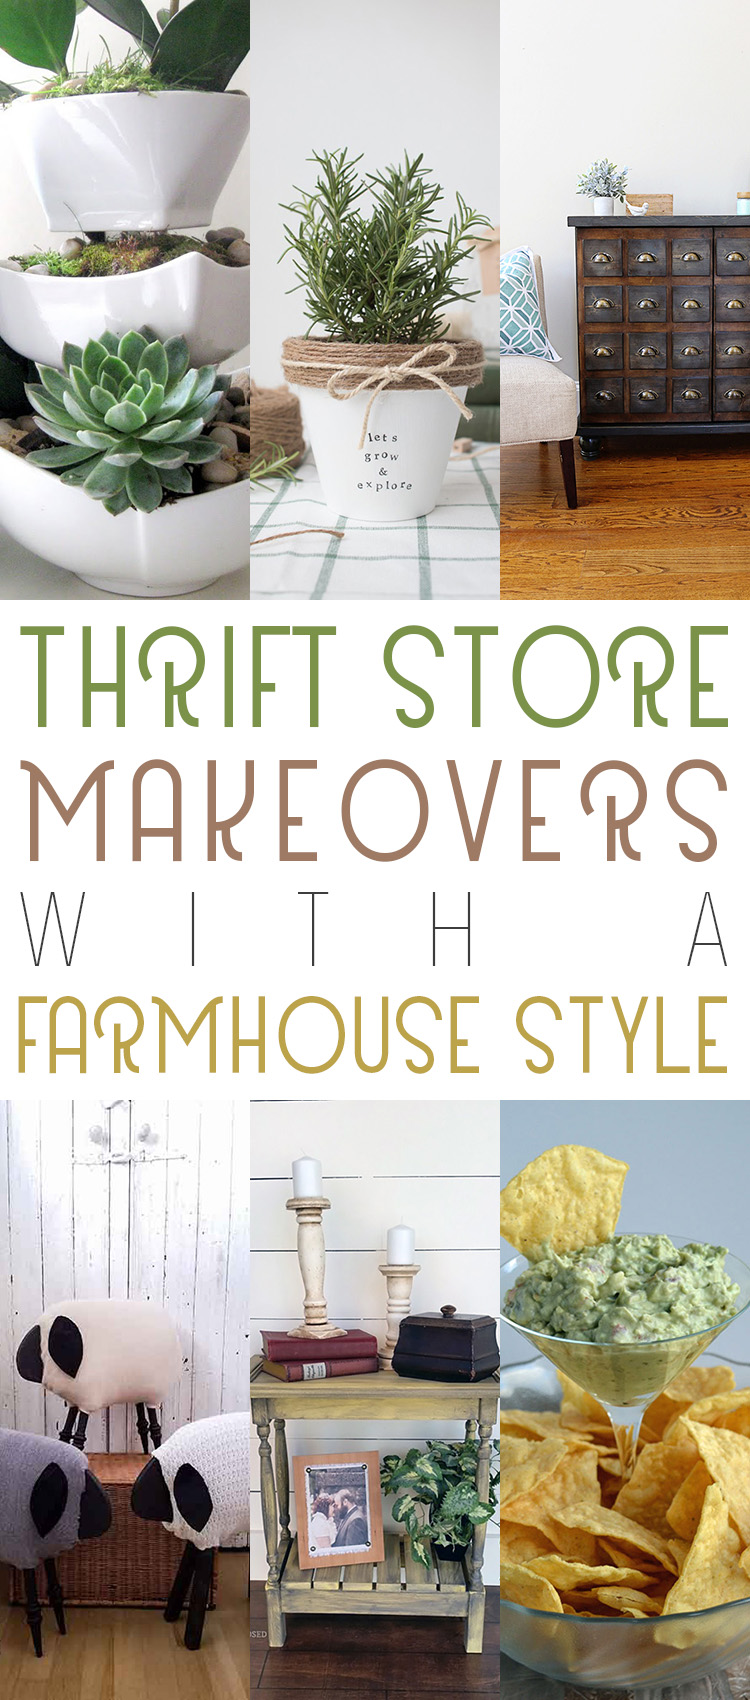 Thrift Store Makeovers with Farmhouse Style! - The Cottage ...